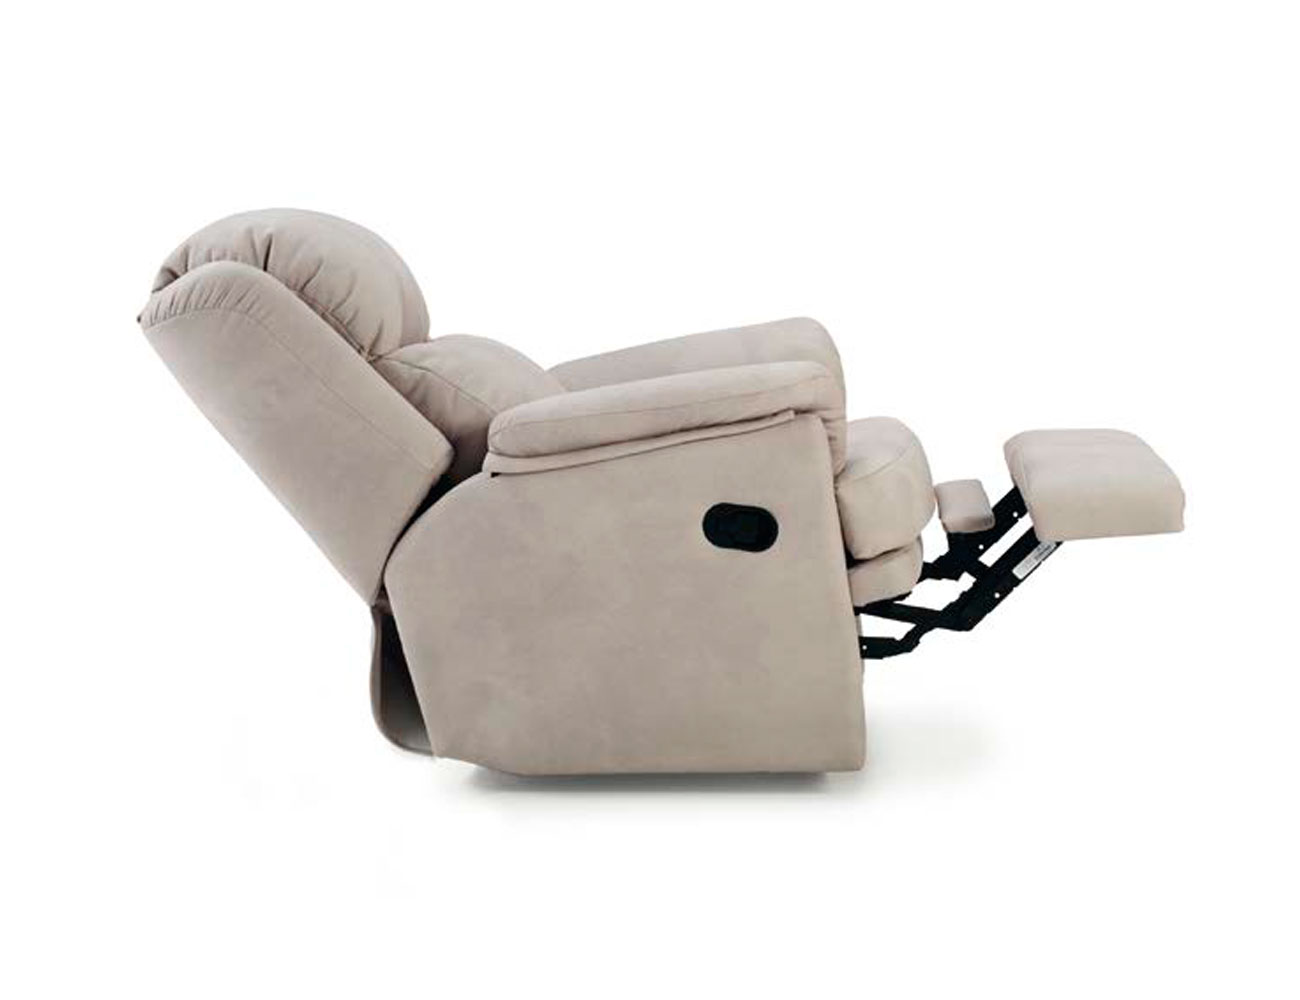 Sillon relax manual palanca esther 125